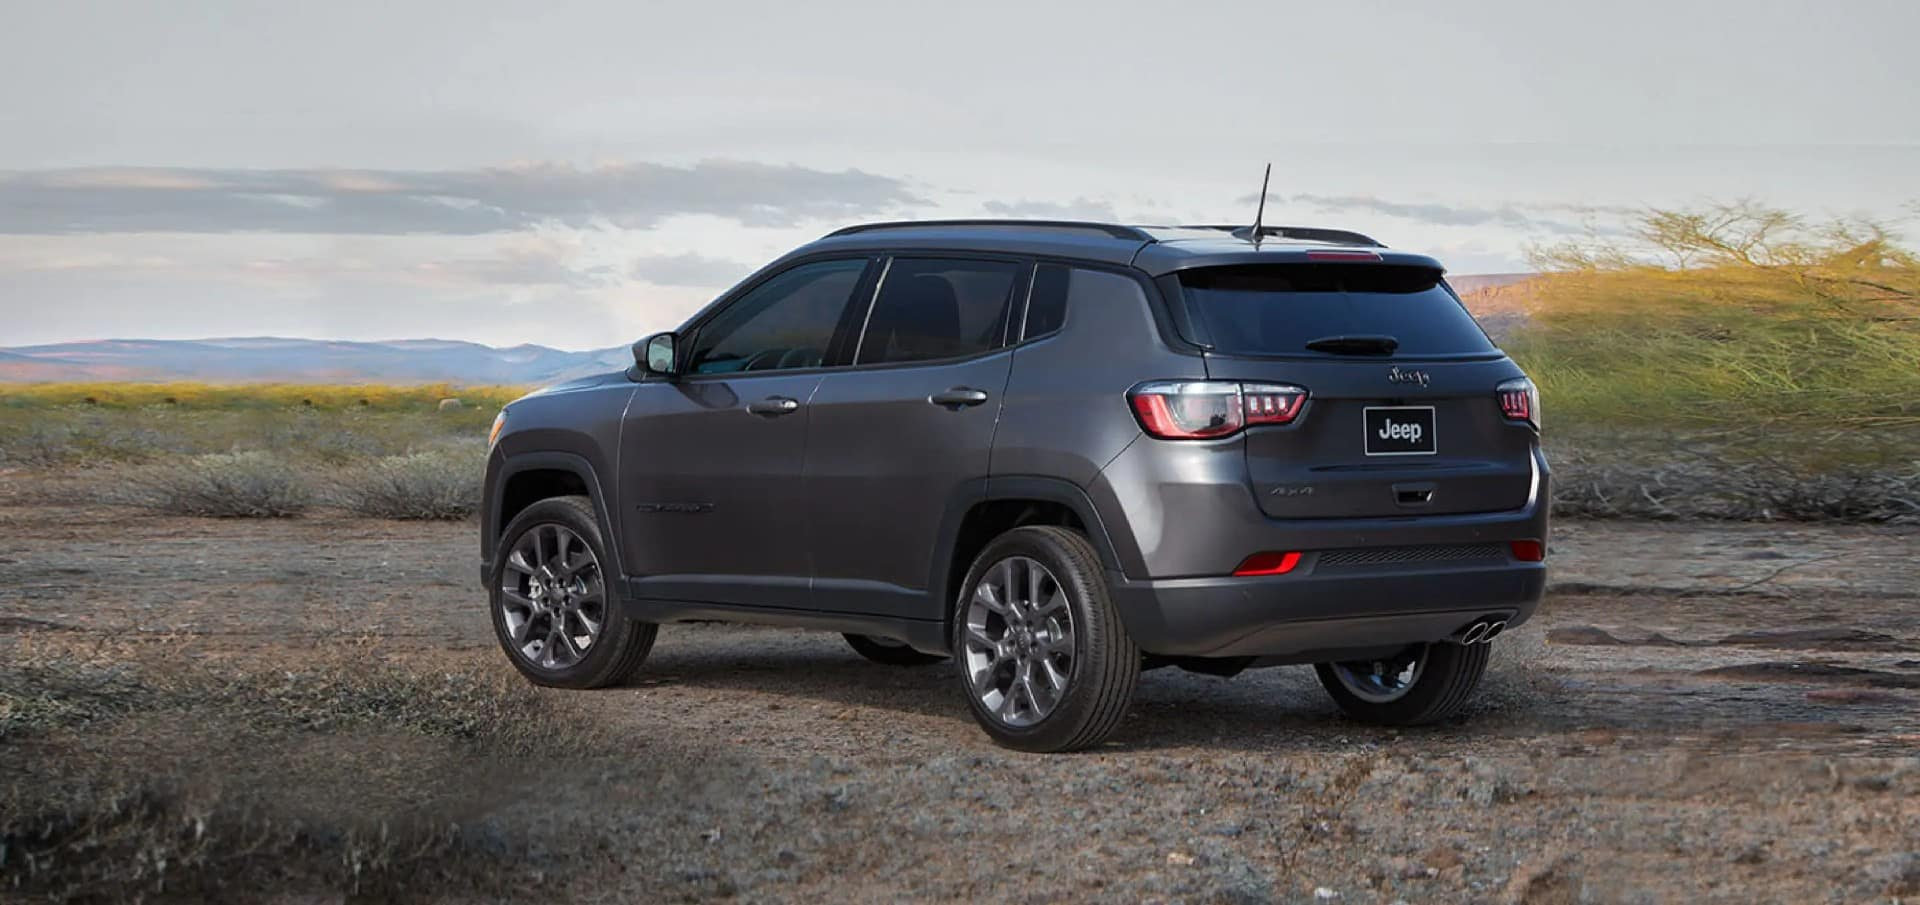 picture of jeep compass 2021 exterior for sale in Hooksett New Hampshire